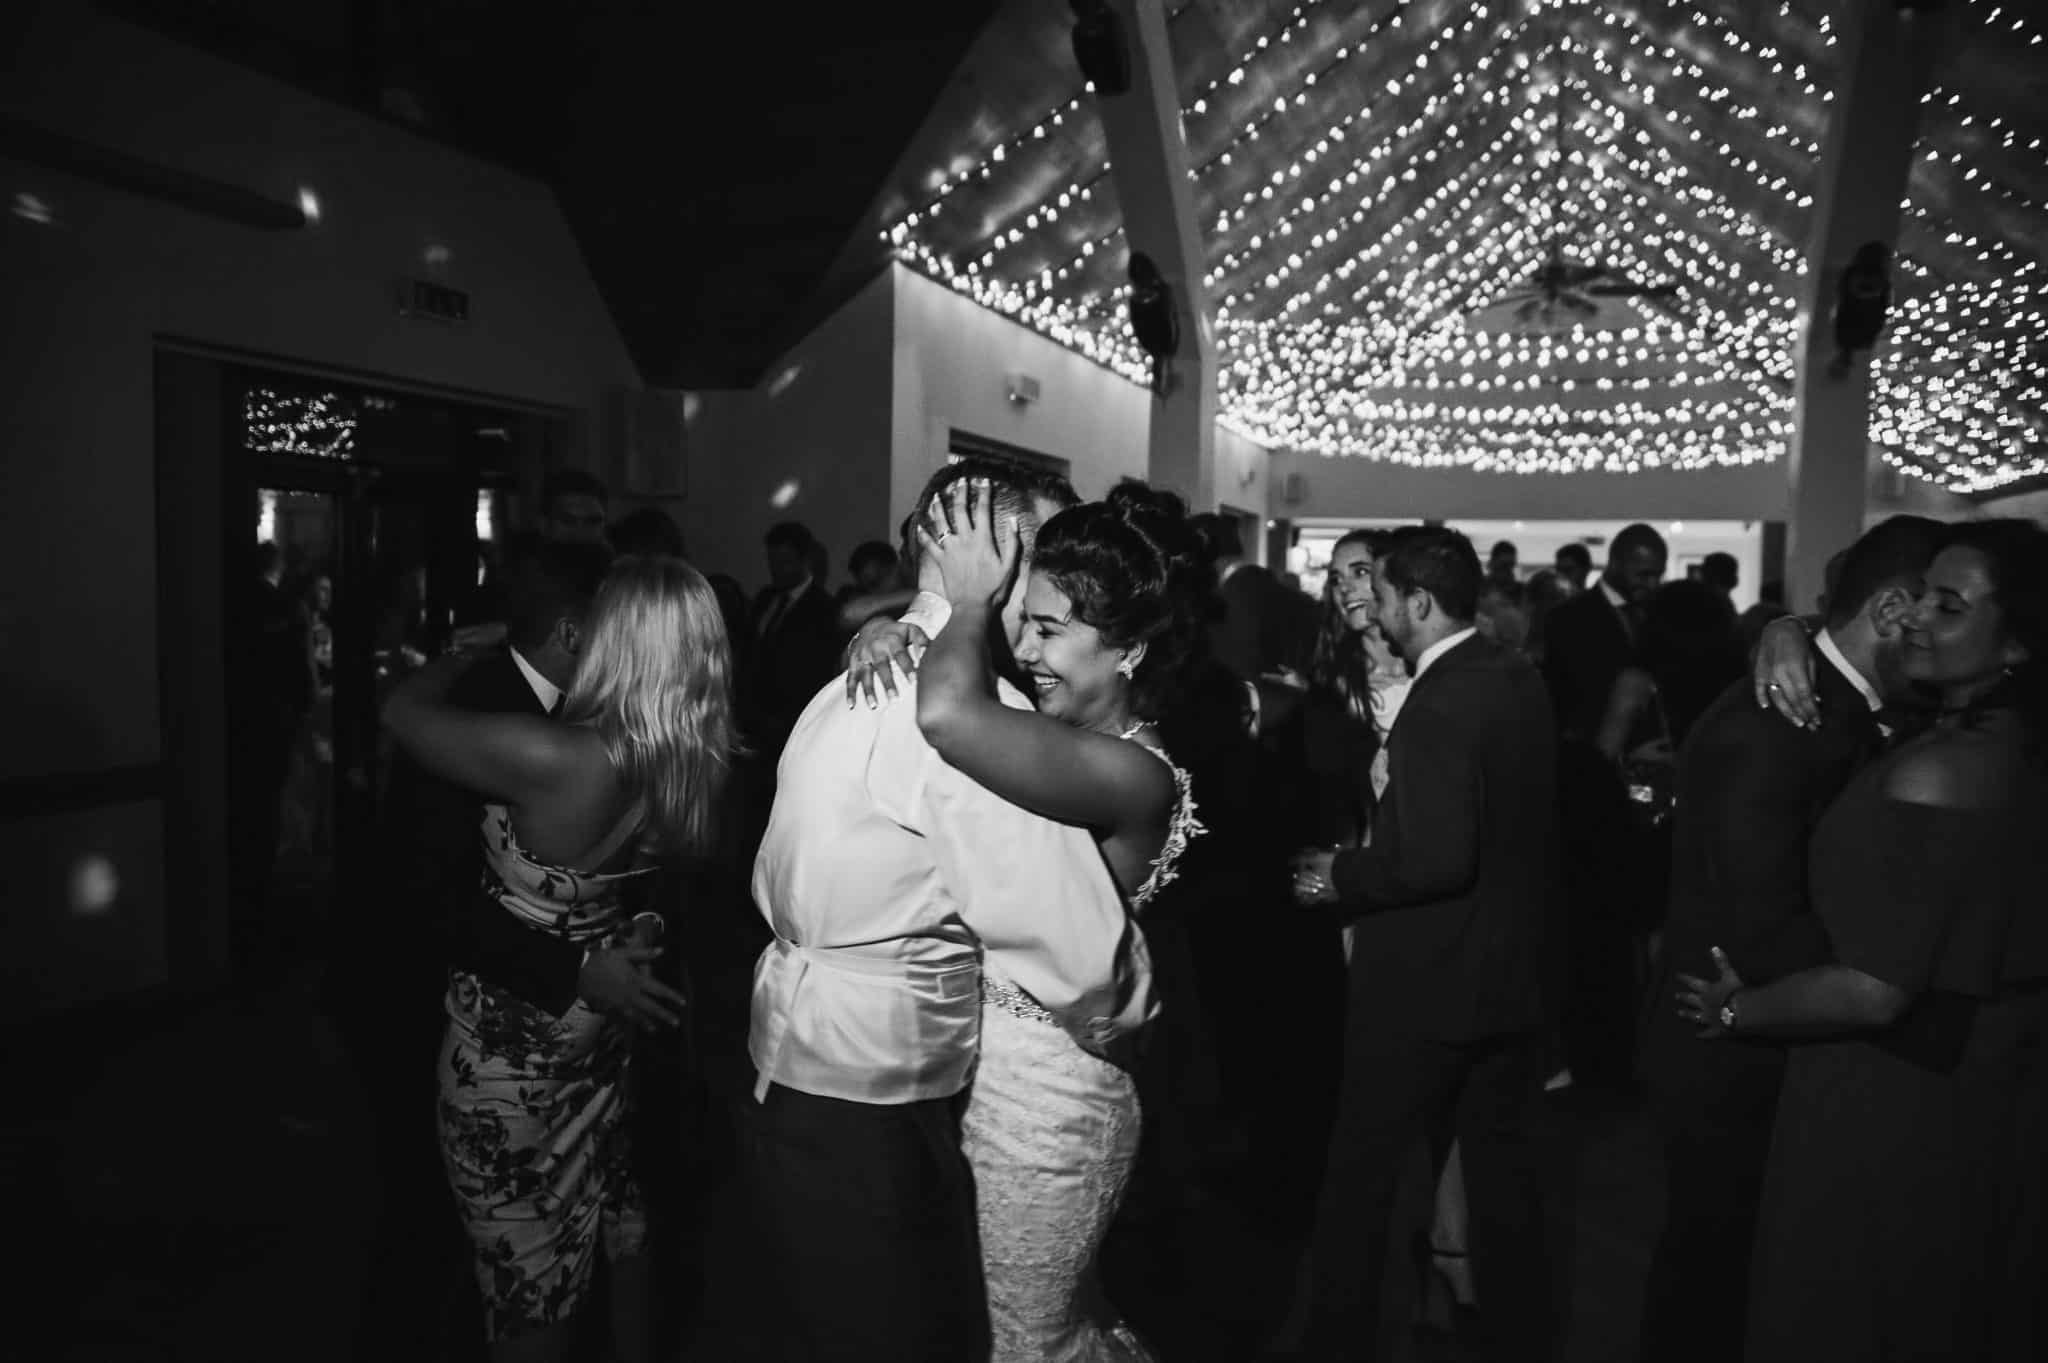 Cardiff wedding photographer - Bride hugs groom whilst dancing in fairy light lit room